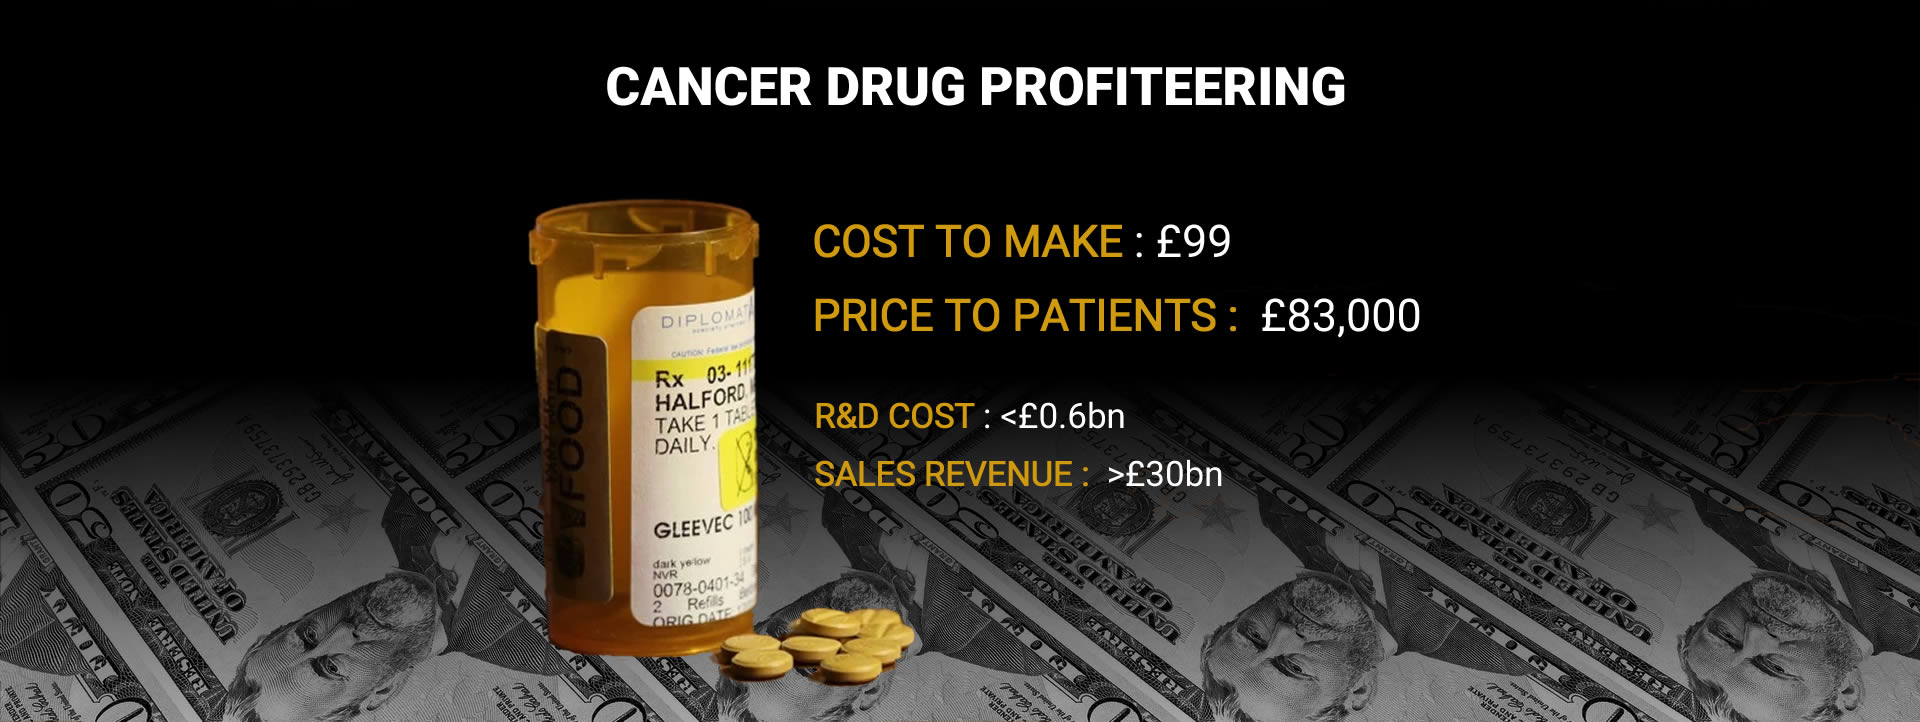 Cancer Drug Profiteering